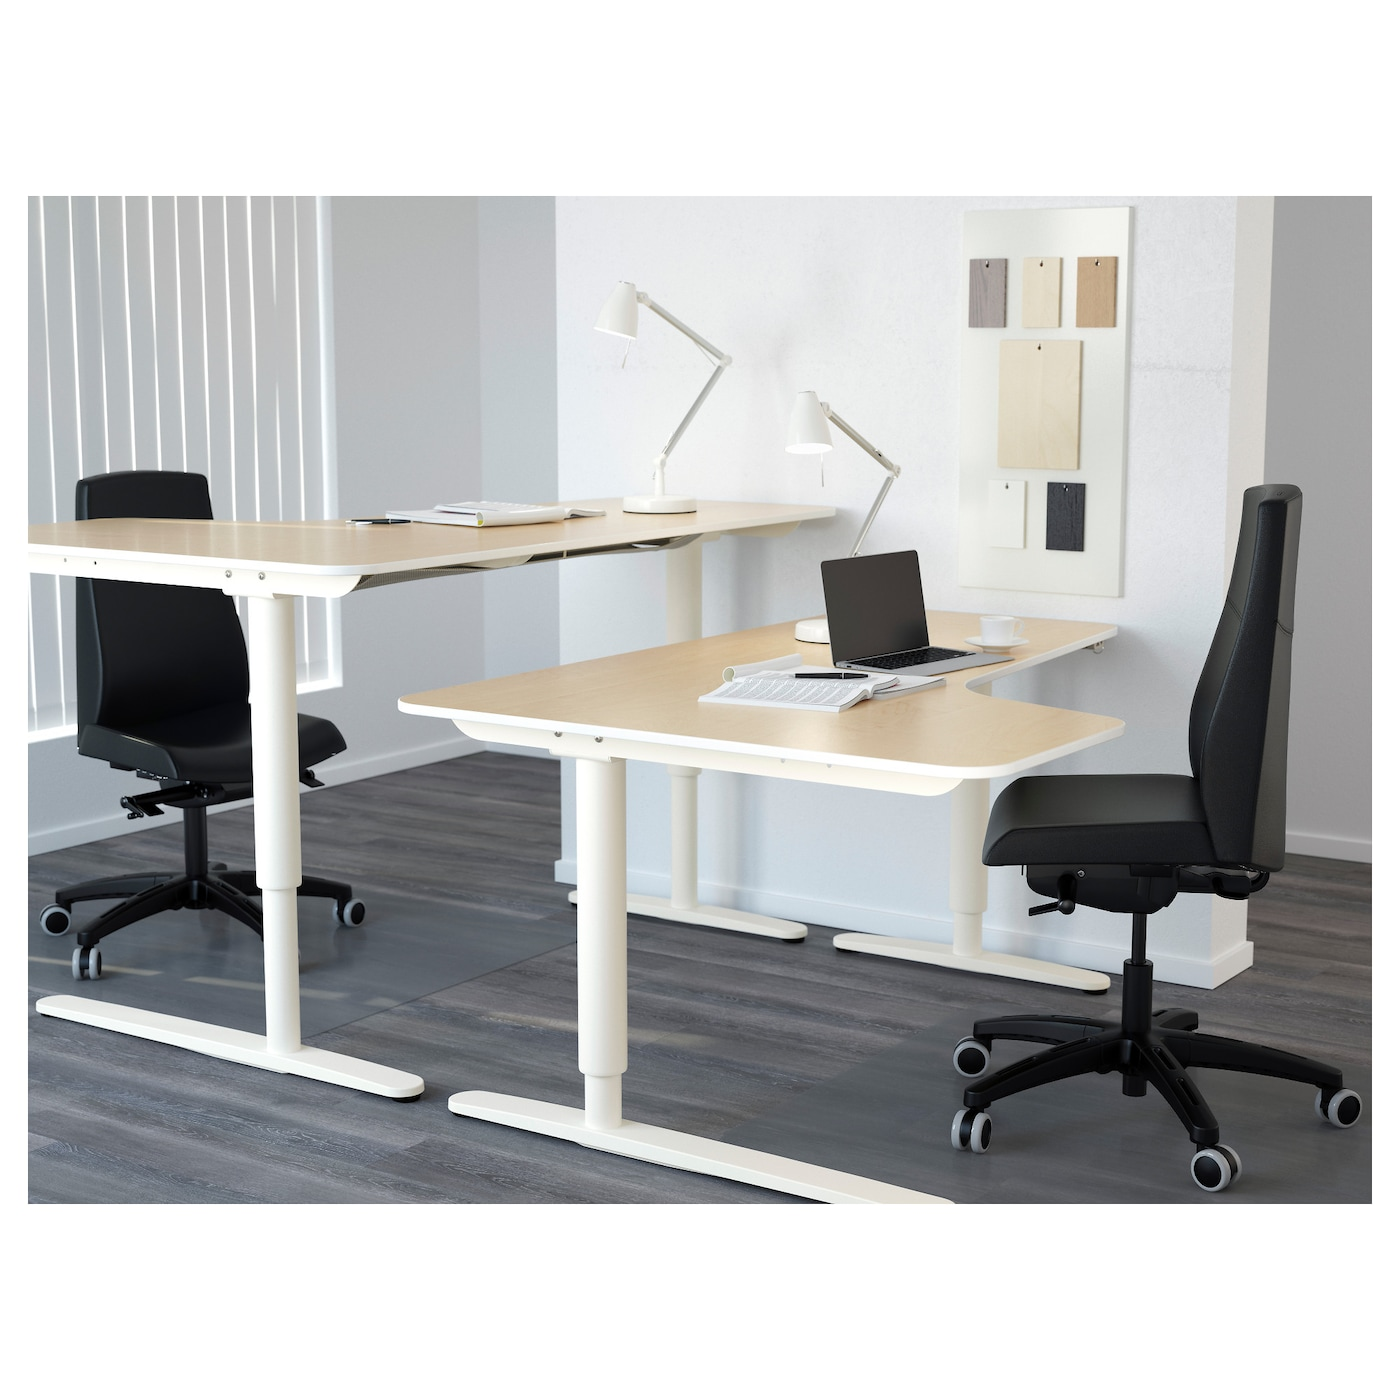 bekant bureau d 39 angle dr assis debout plaqu bouleau blanc 160x110 cm ikea. Black Bedroom Furniture Sets. Home Design Ideas